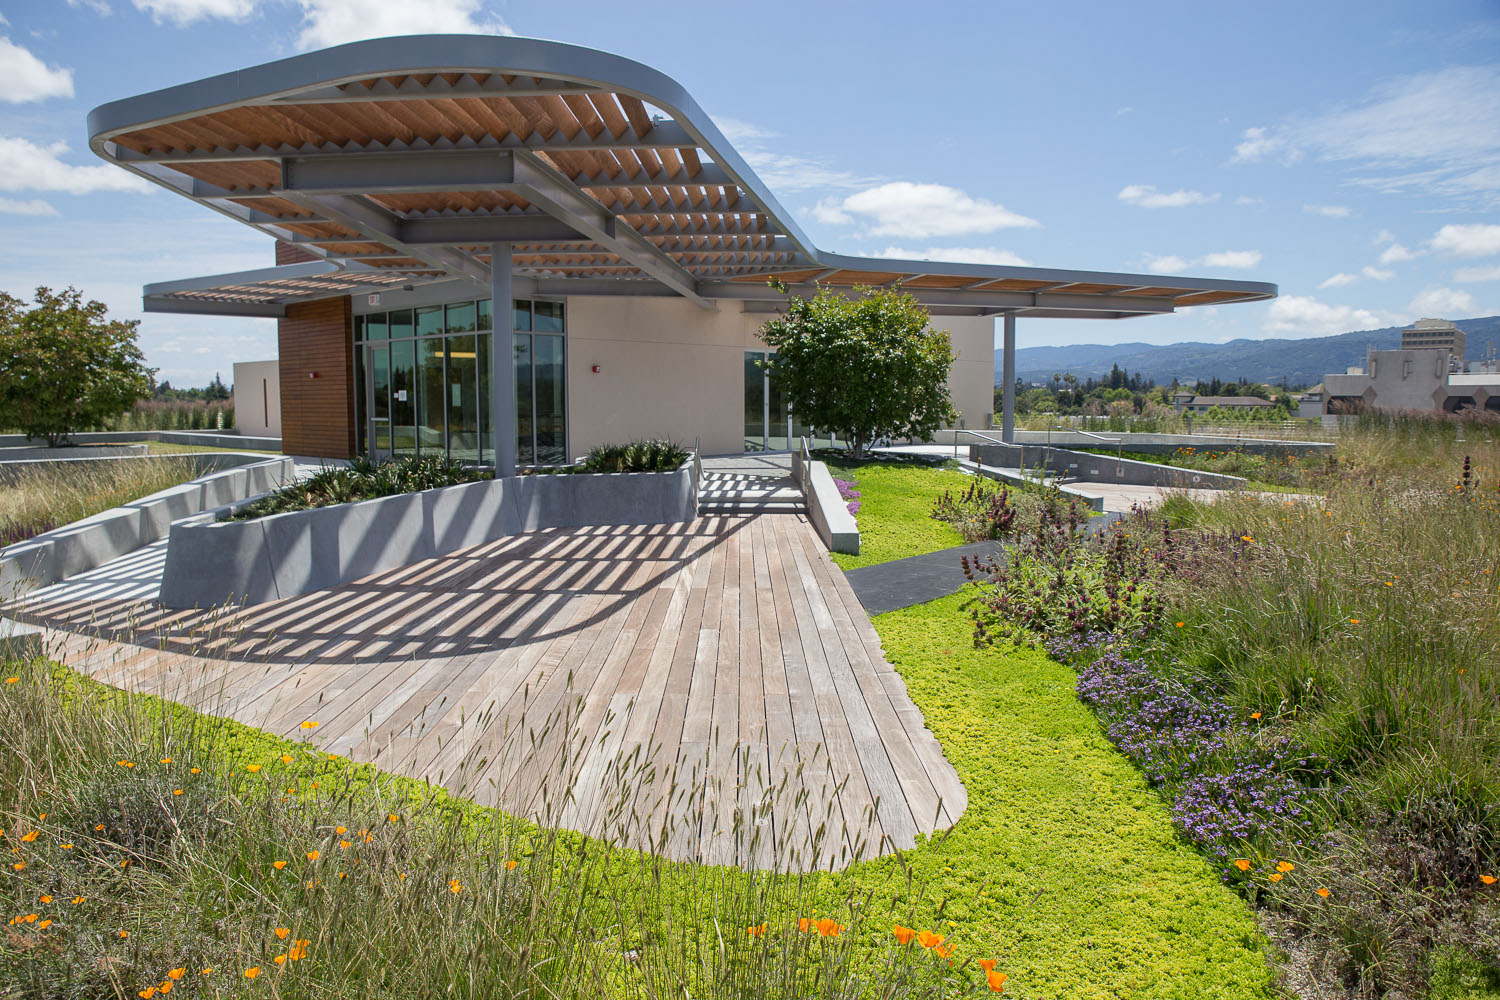 899 West Evelyn Living Roof — Rana Creek Design